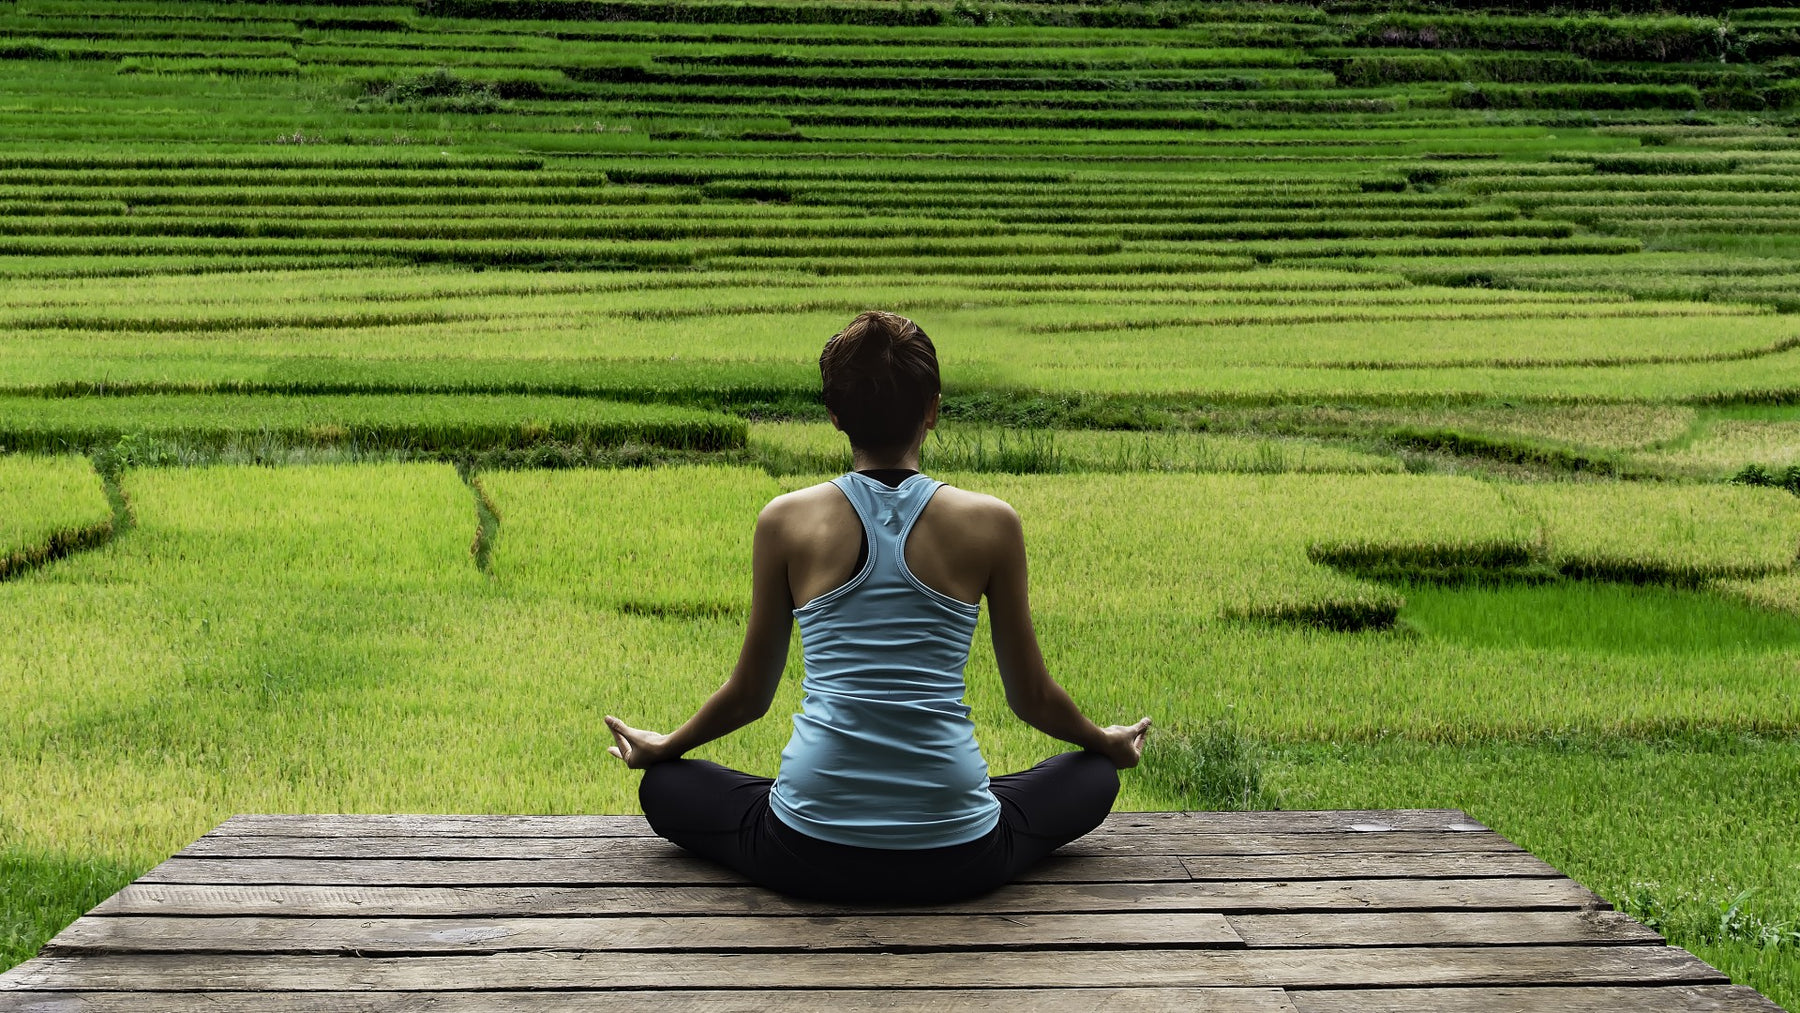 Meditation Doesn't Make You Calmer or Less Aggressive